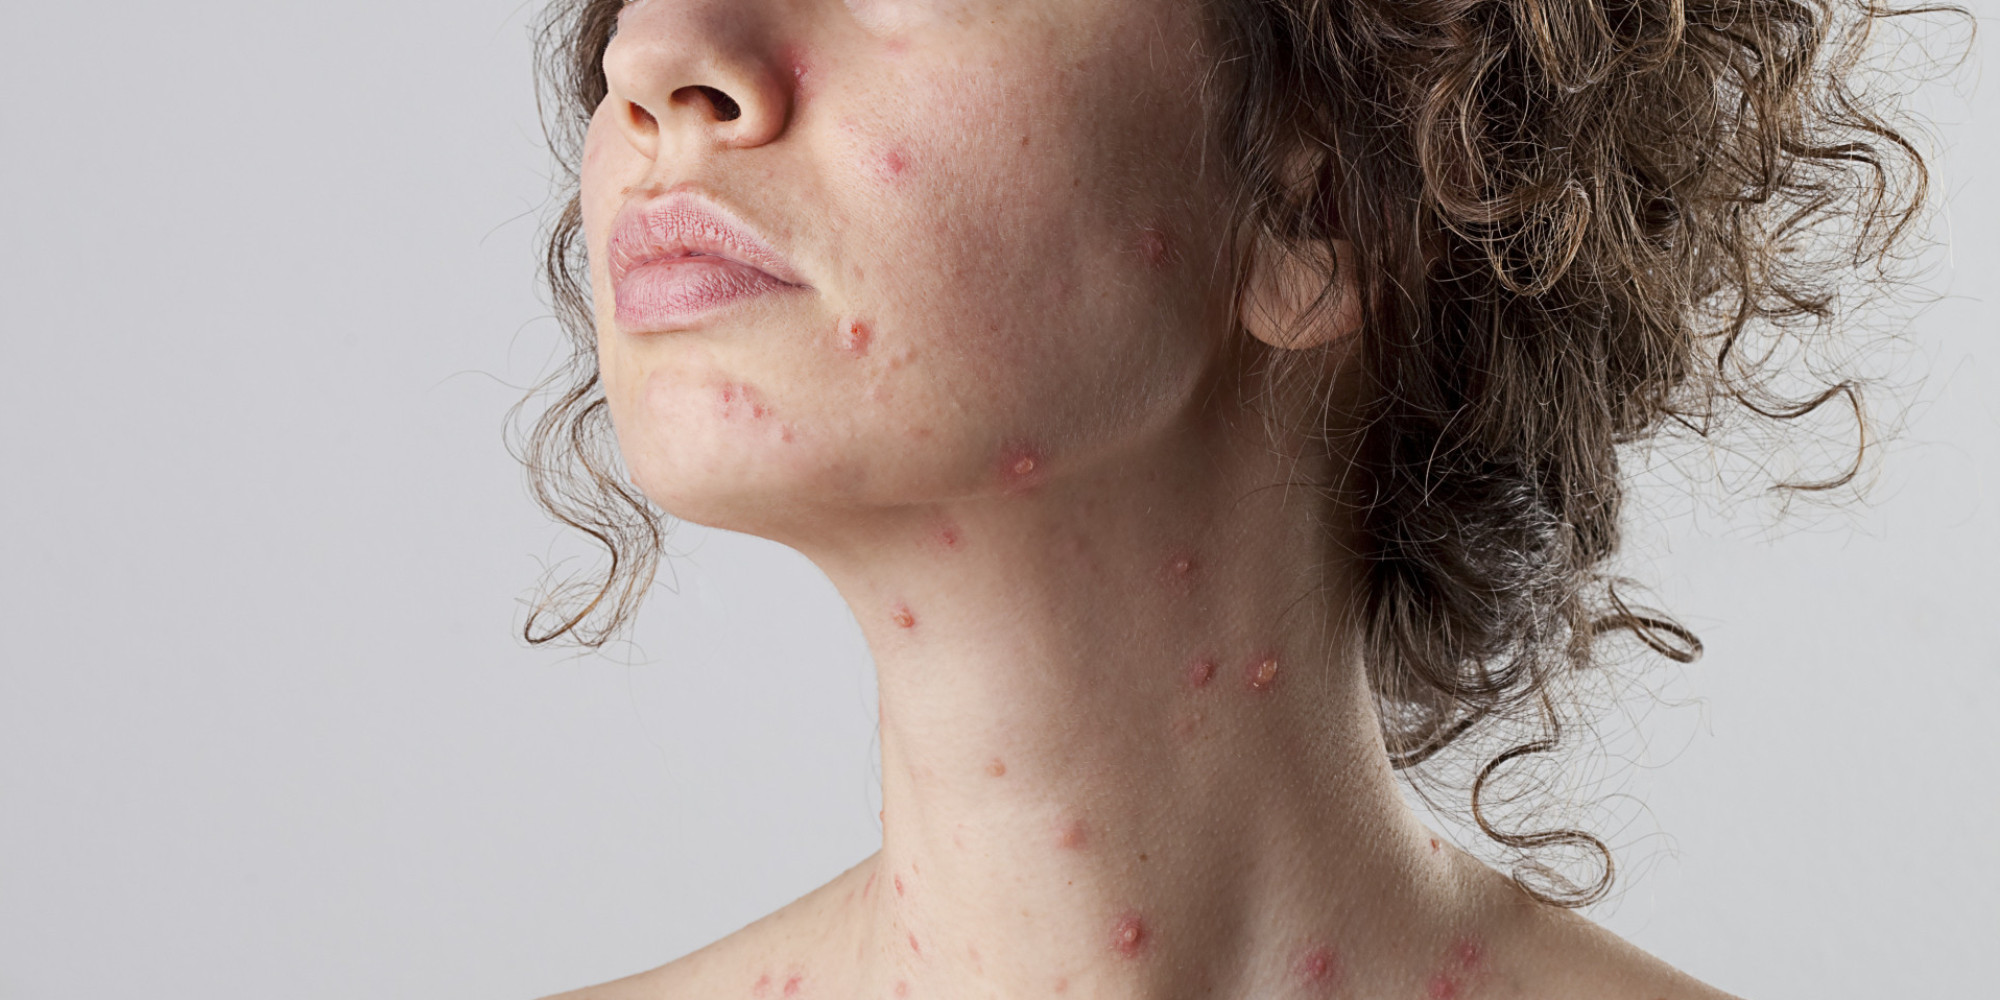 Is It Shingles Virus or Something Else? Everyday Health